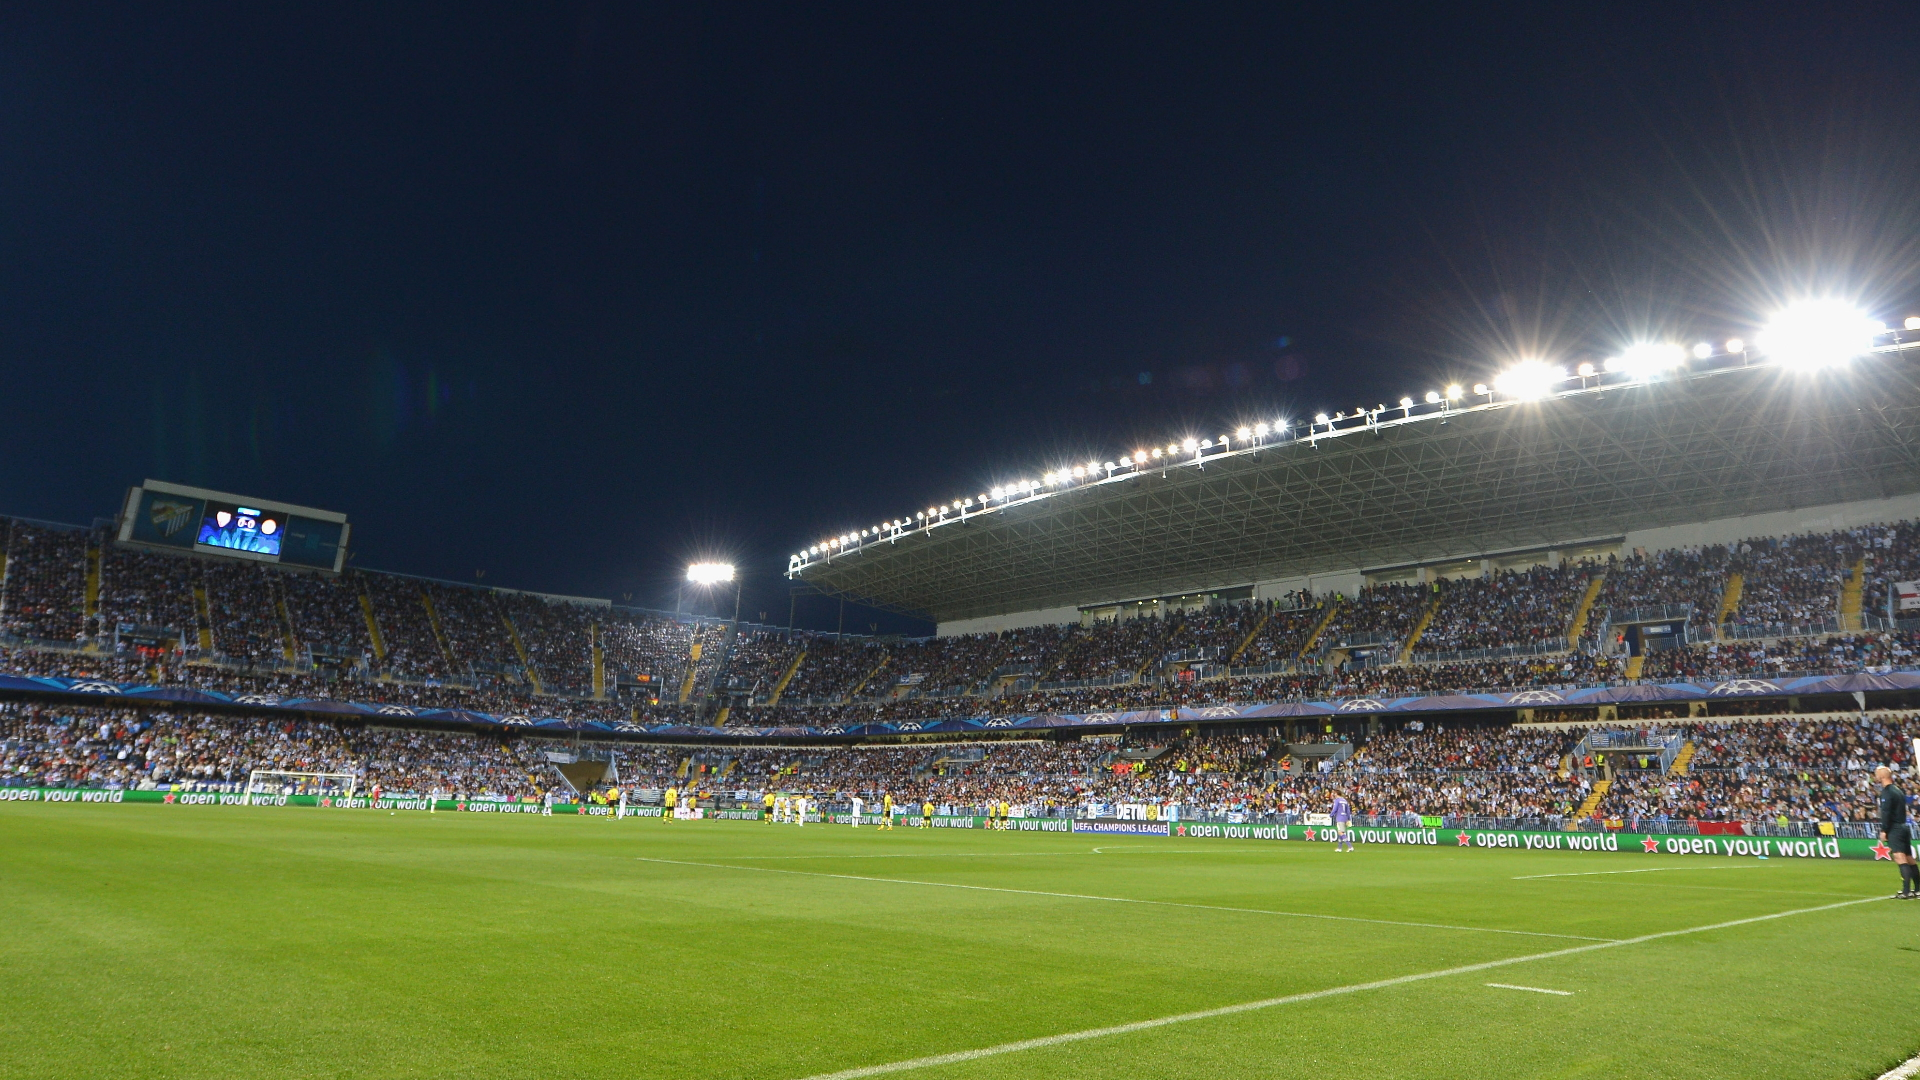 Malaga request upcoming game with Cadiz to be rescheduled due to lack of available players